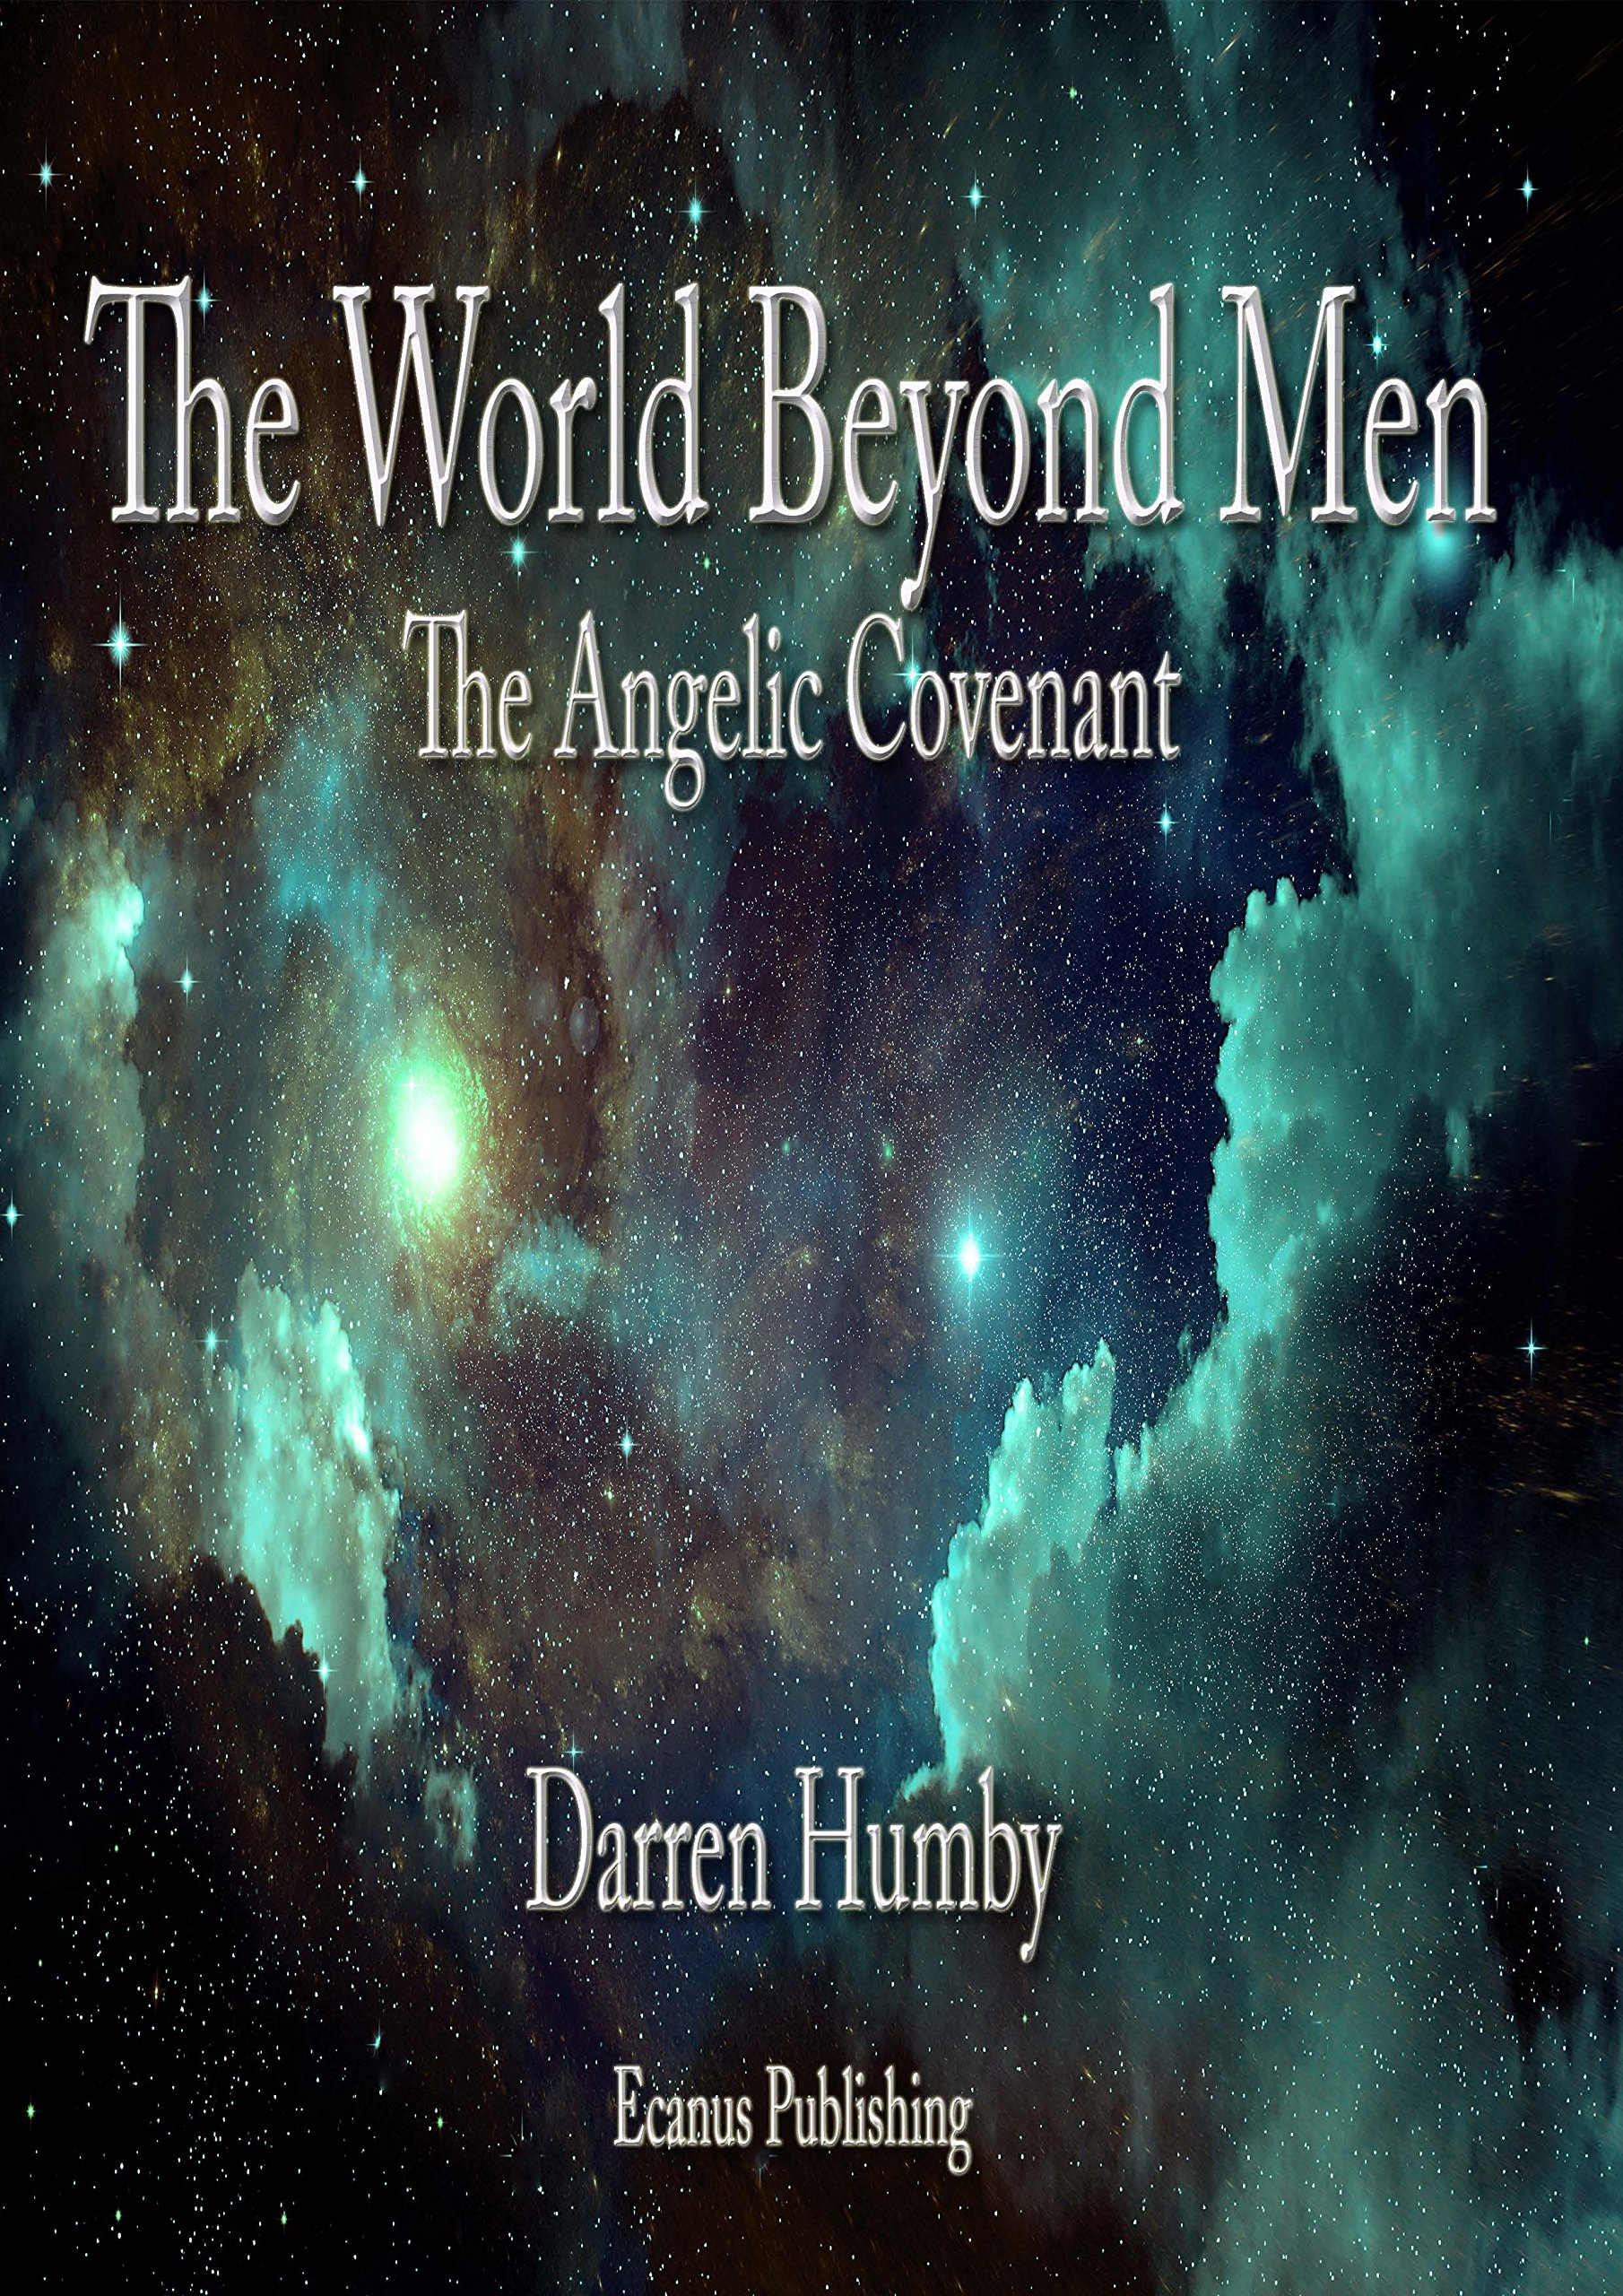 The World Beyond Men: The Angelic Covenant (Tales of the Angelic Covenant Book 1)